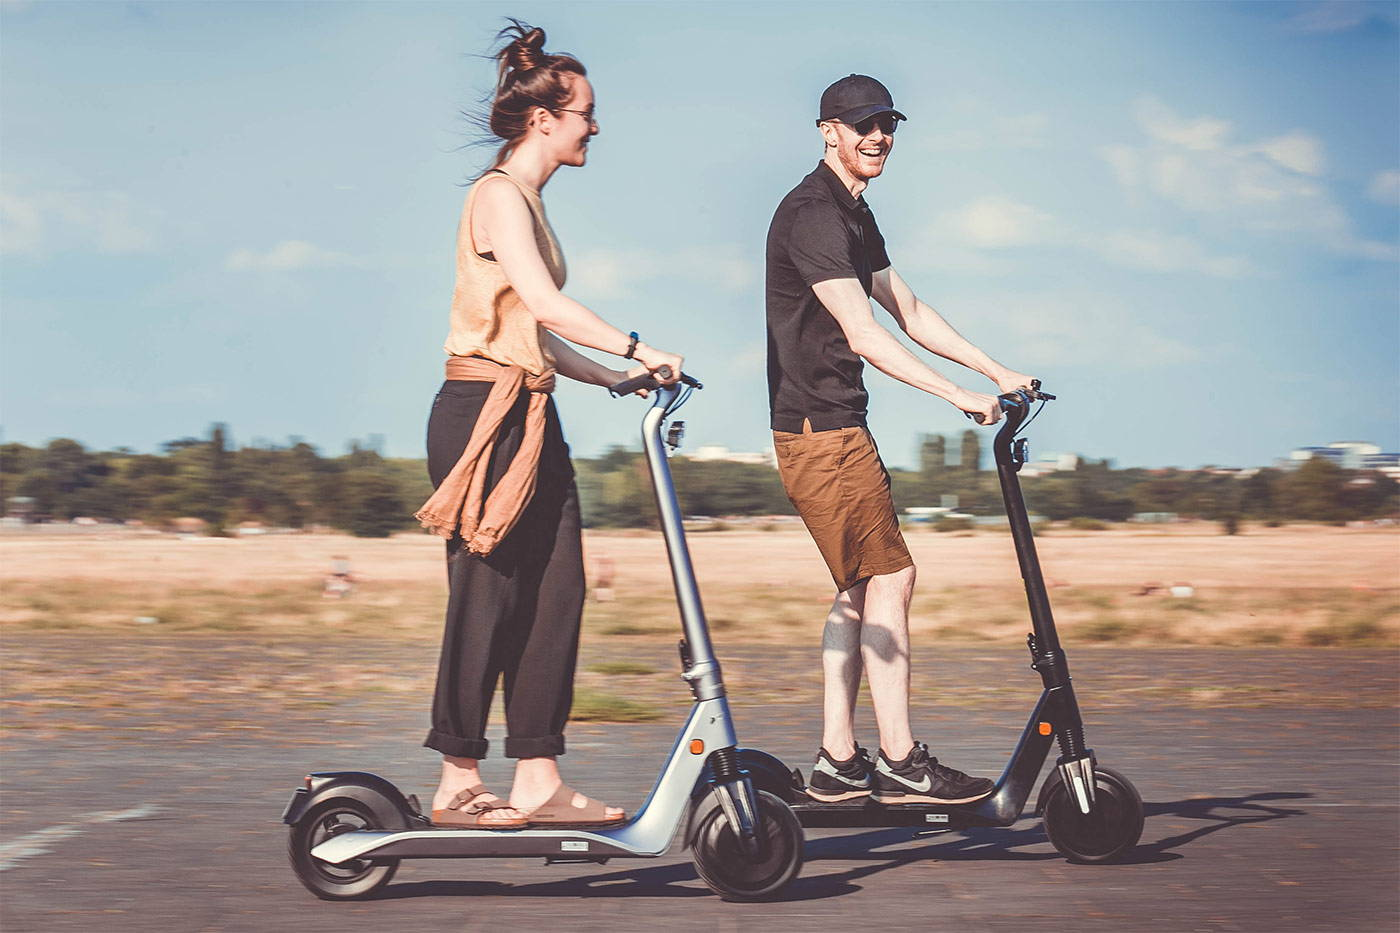 okai-escooter-couple-riding-es500-scooters-smiling